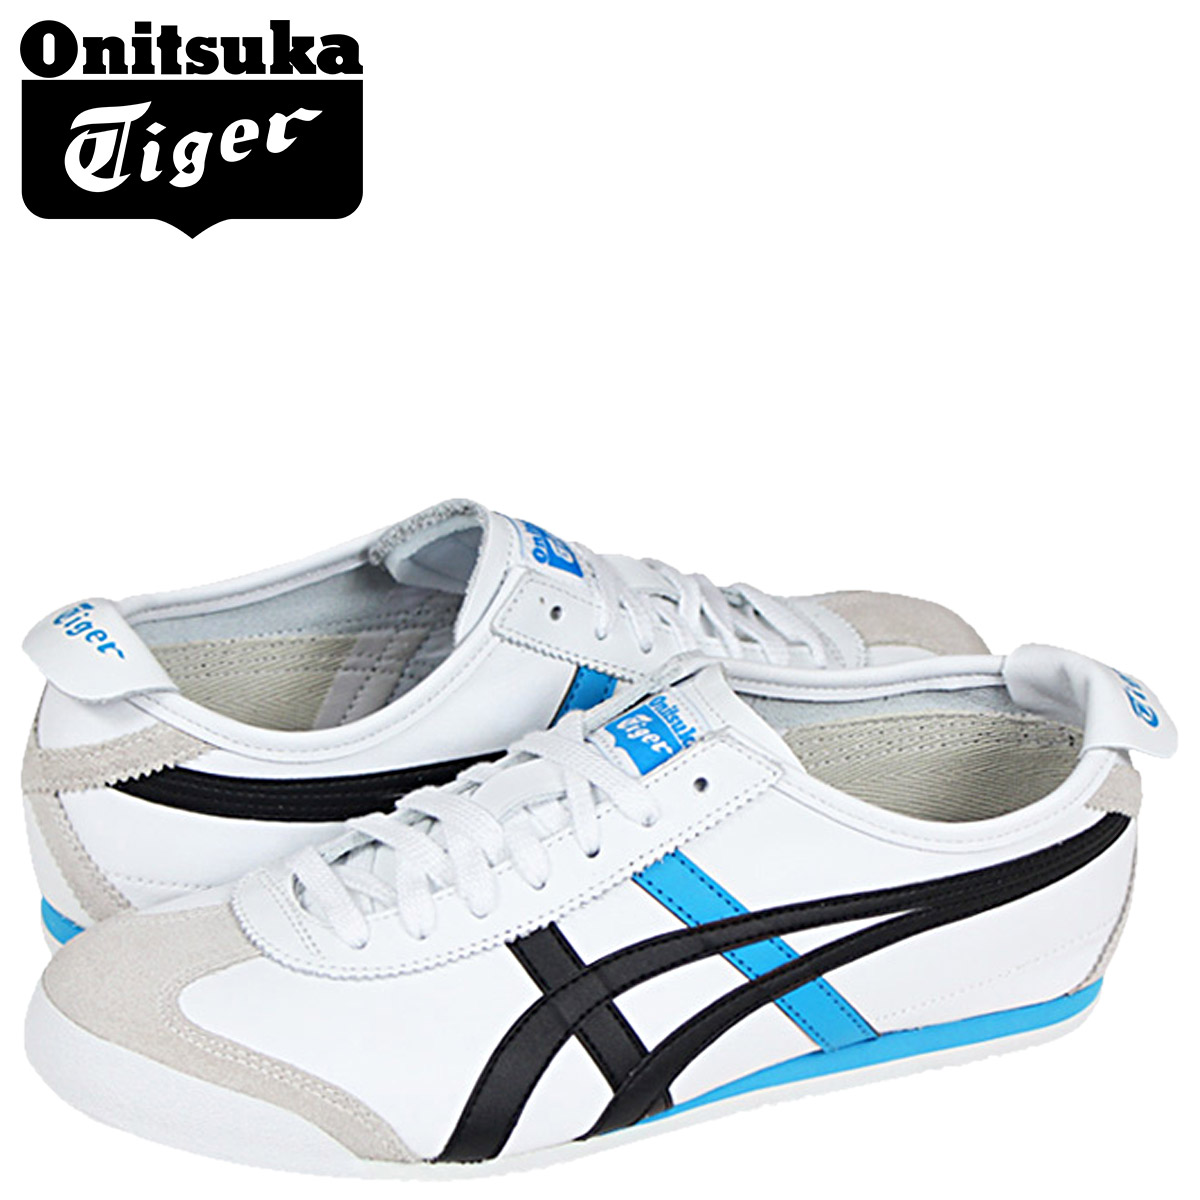 wholesale dealer ba68f 8b733 Point 2 x Womens MEXICO 66 sneakers, ONITSUKA Tiger ASICs Onitsuka Tiger  asics Mexico 66 suede × leather white THL7C2-0152 [5 / 13 new in stock] ...